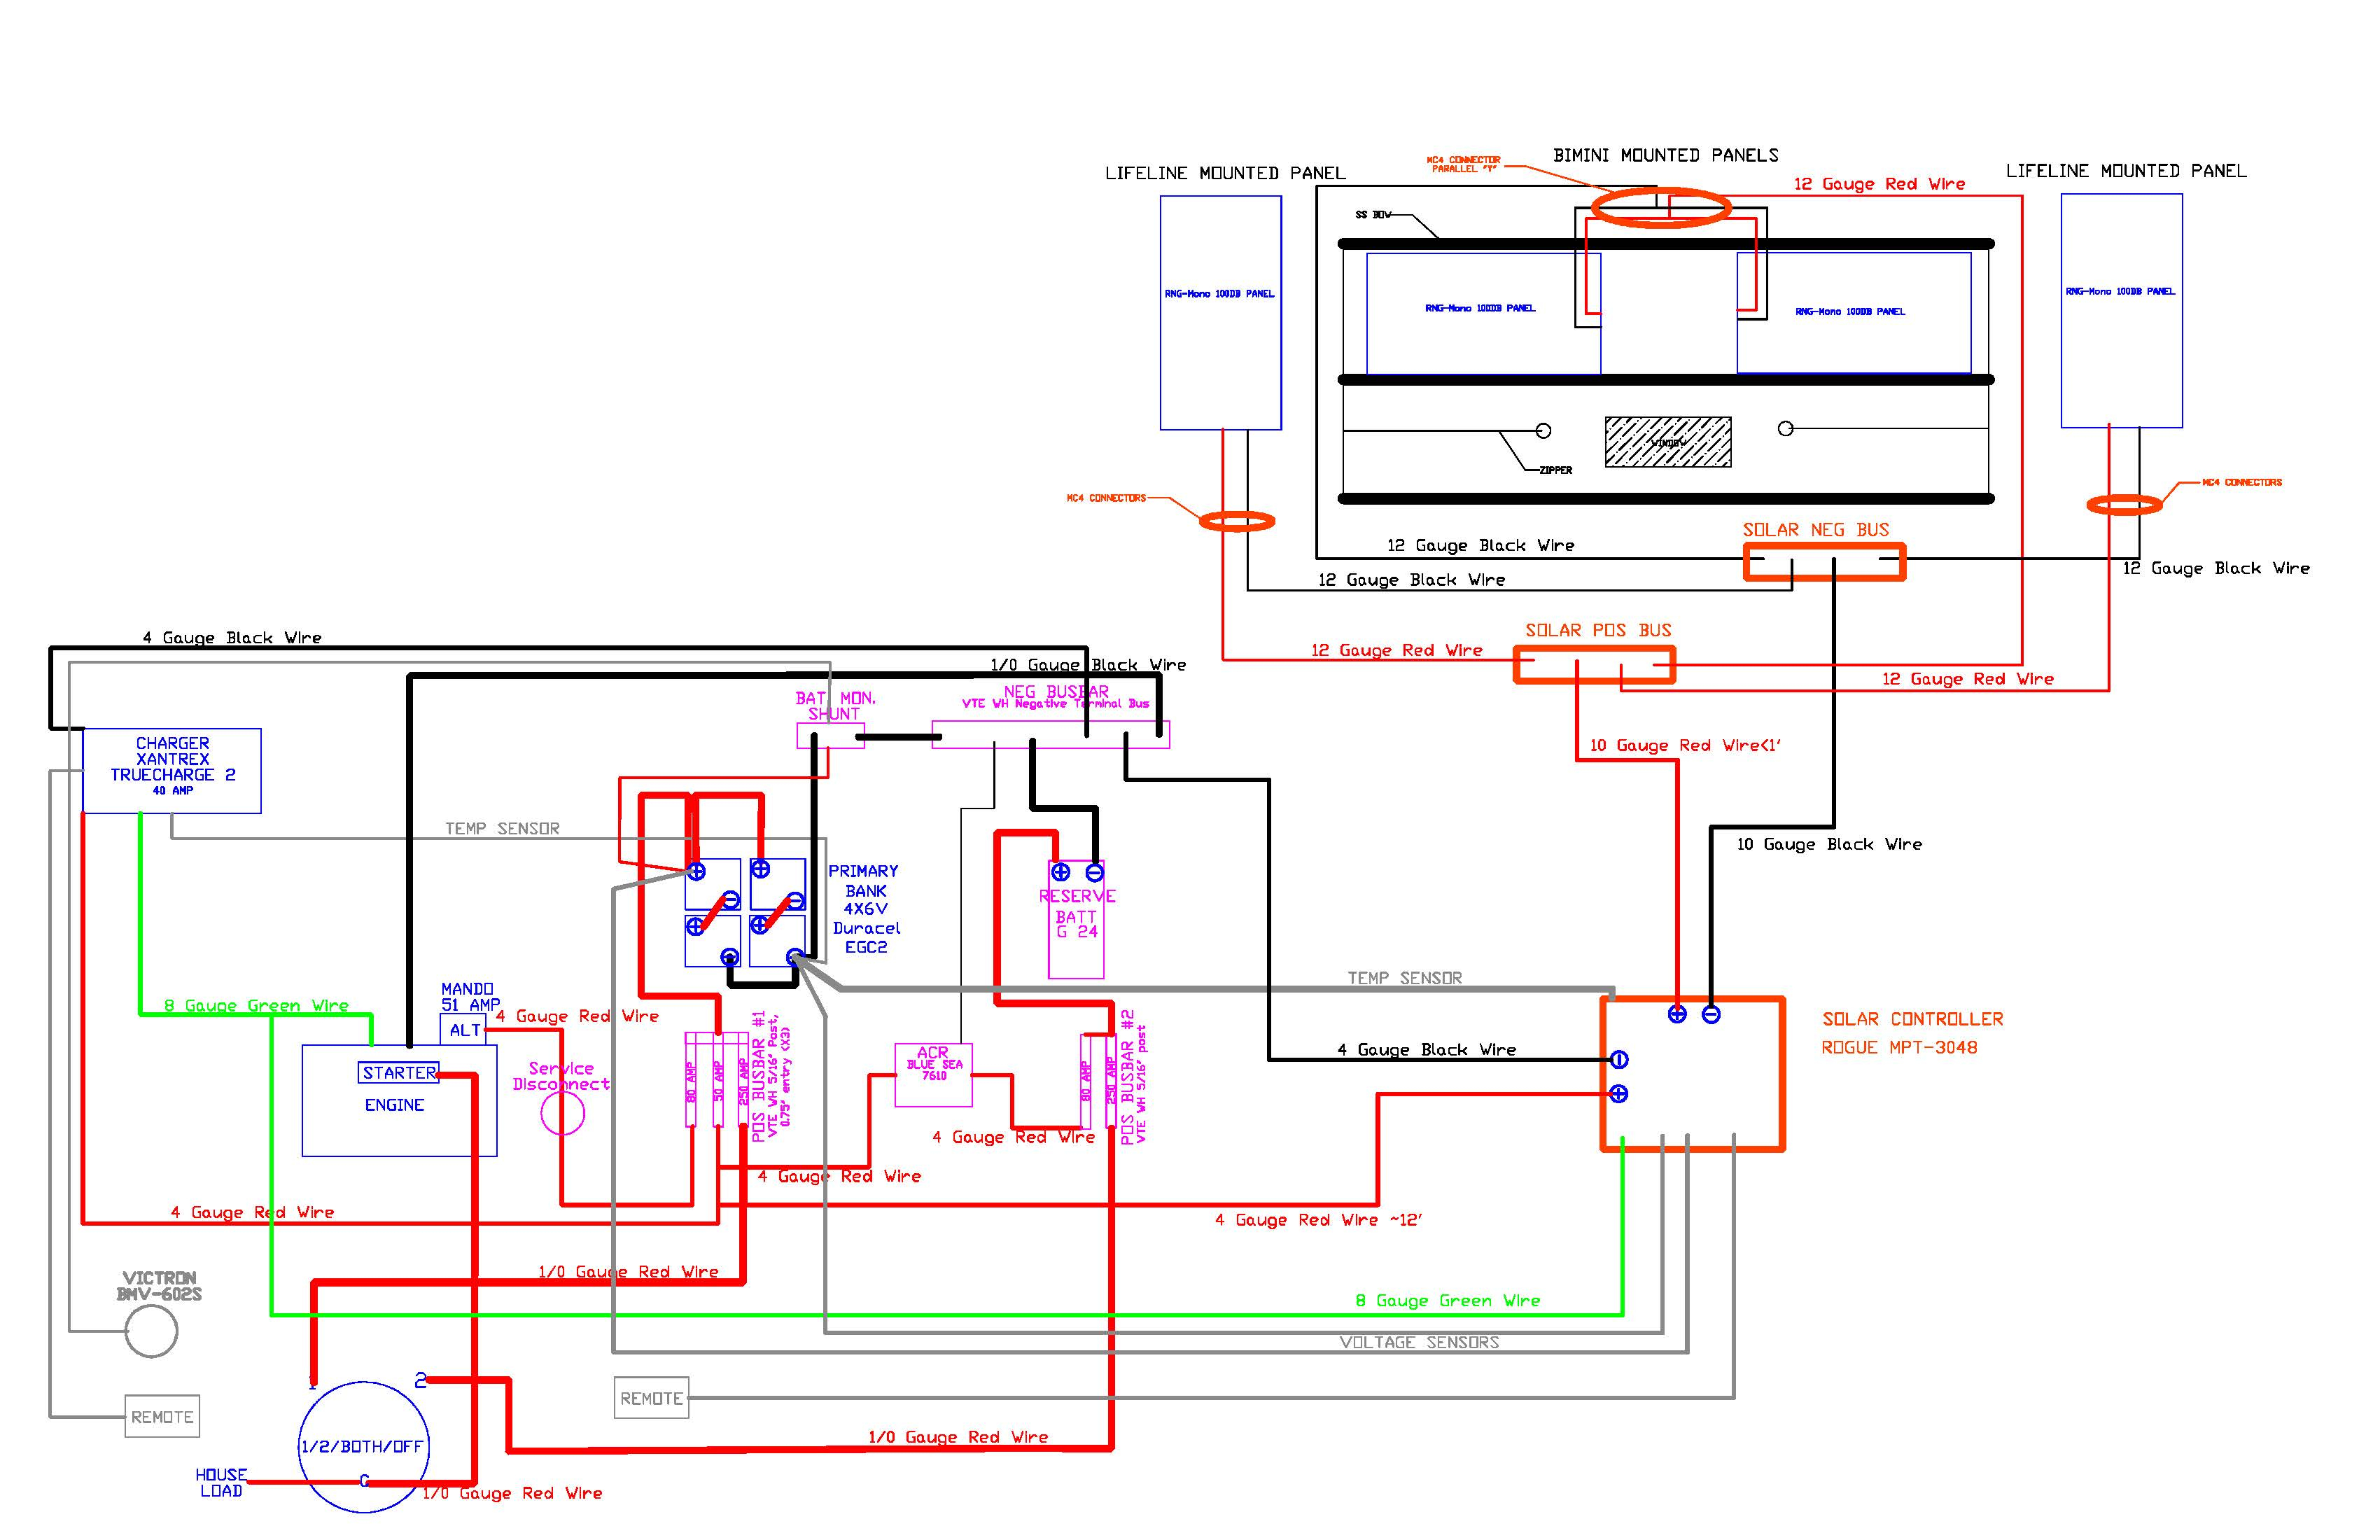 enphase micro inverter wiring diagram Download-JK WIRING DIAGRAM ADDING SOLAR 17-a